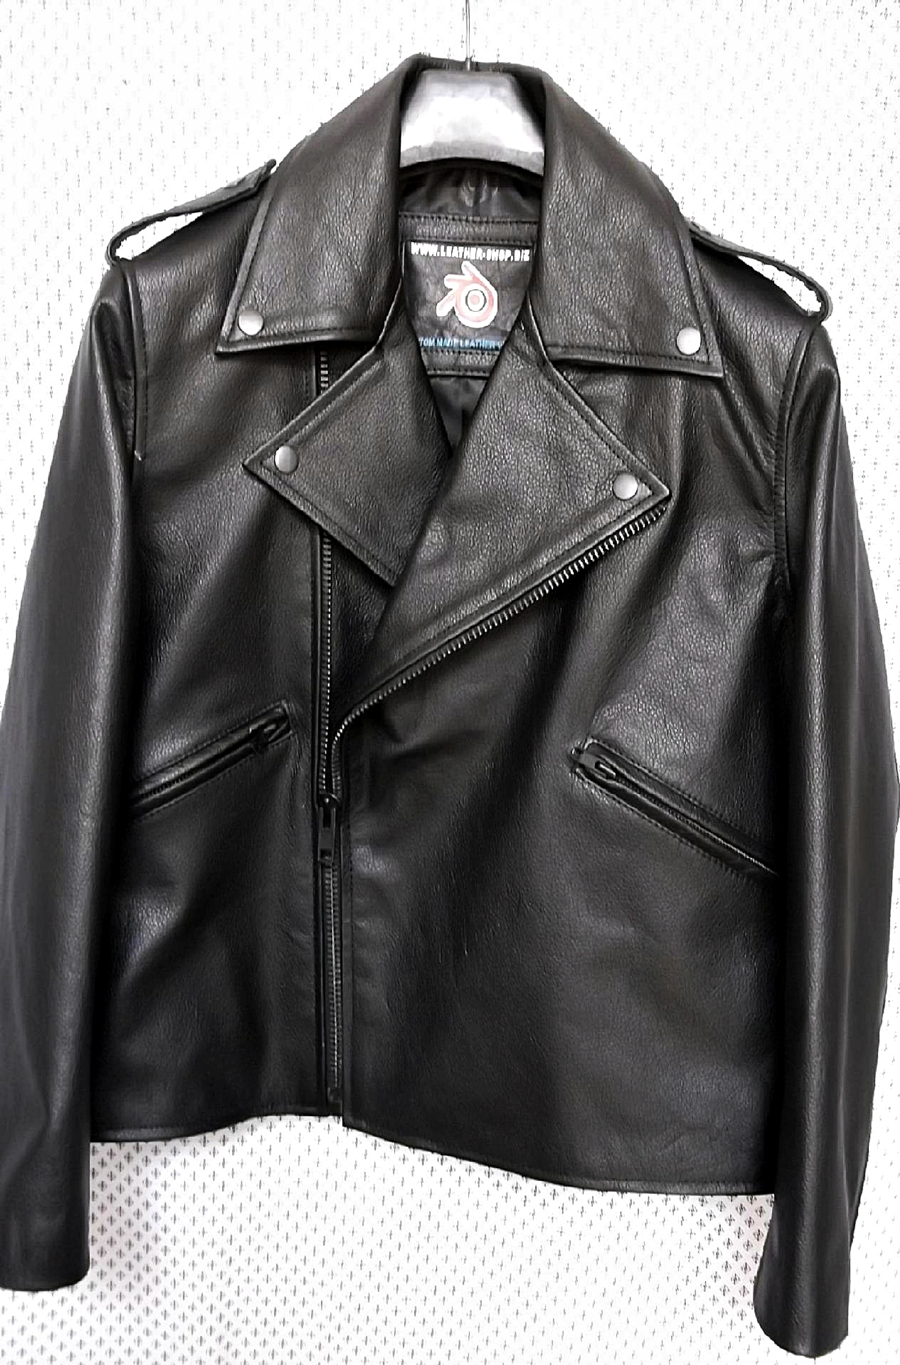 mens-leather-jacket-mlj111-black-www.leather-shop.biz-front-pic.jpg